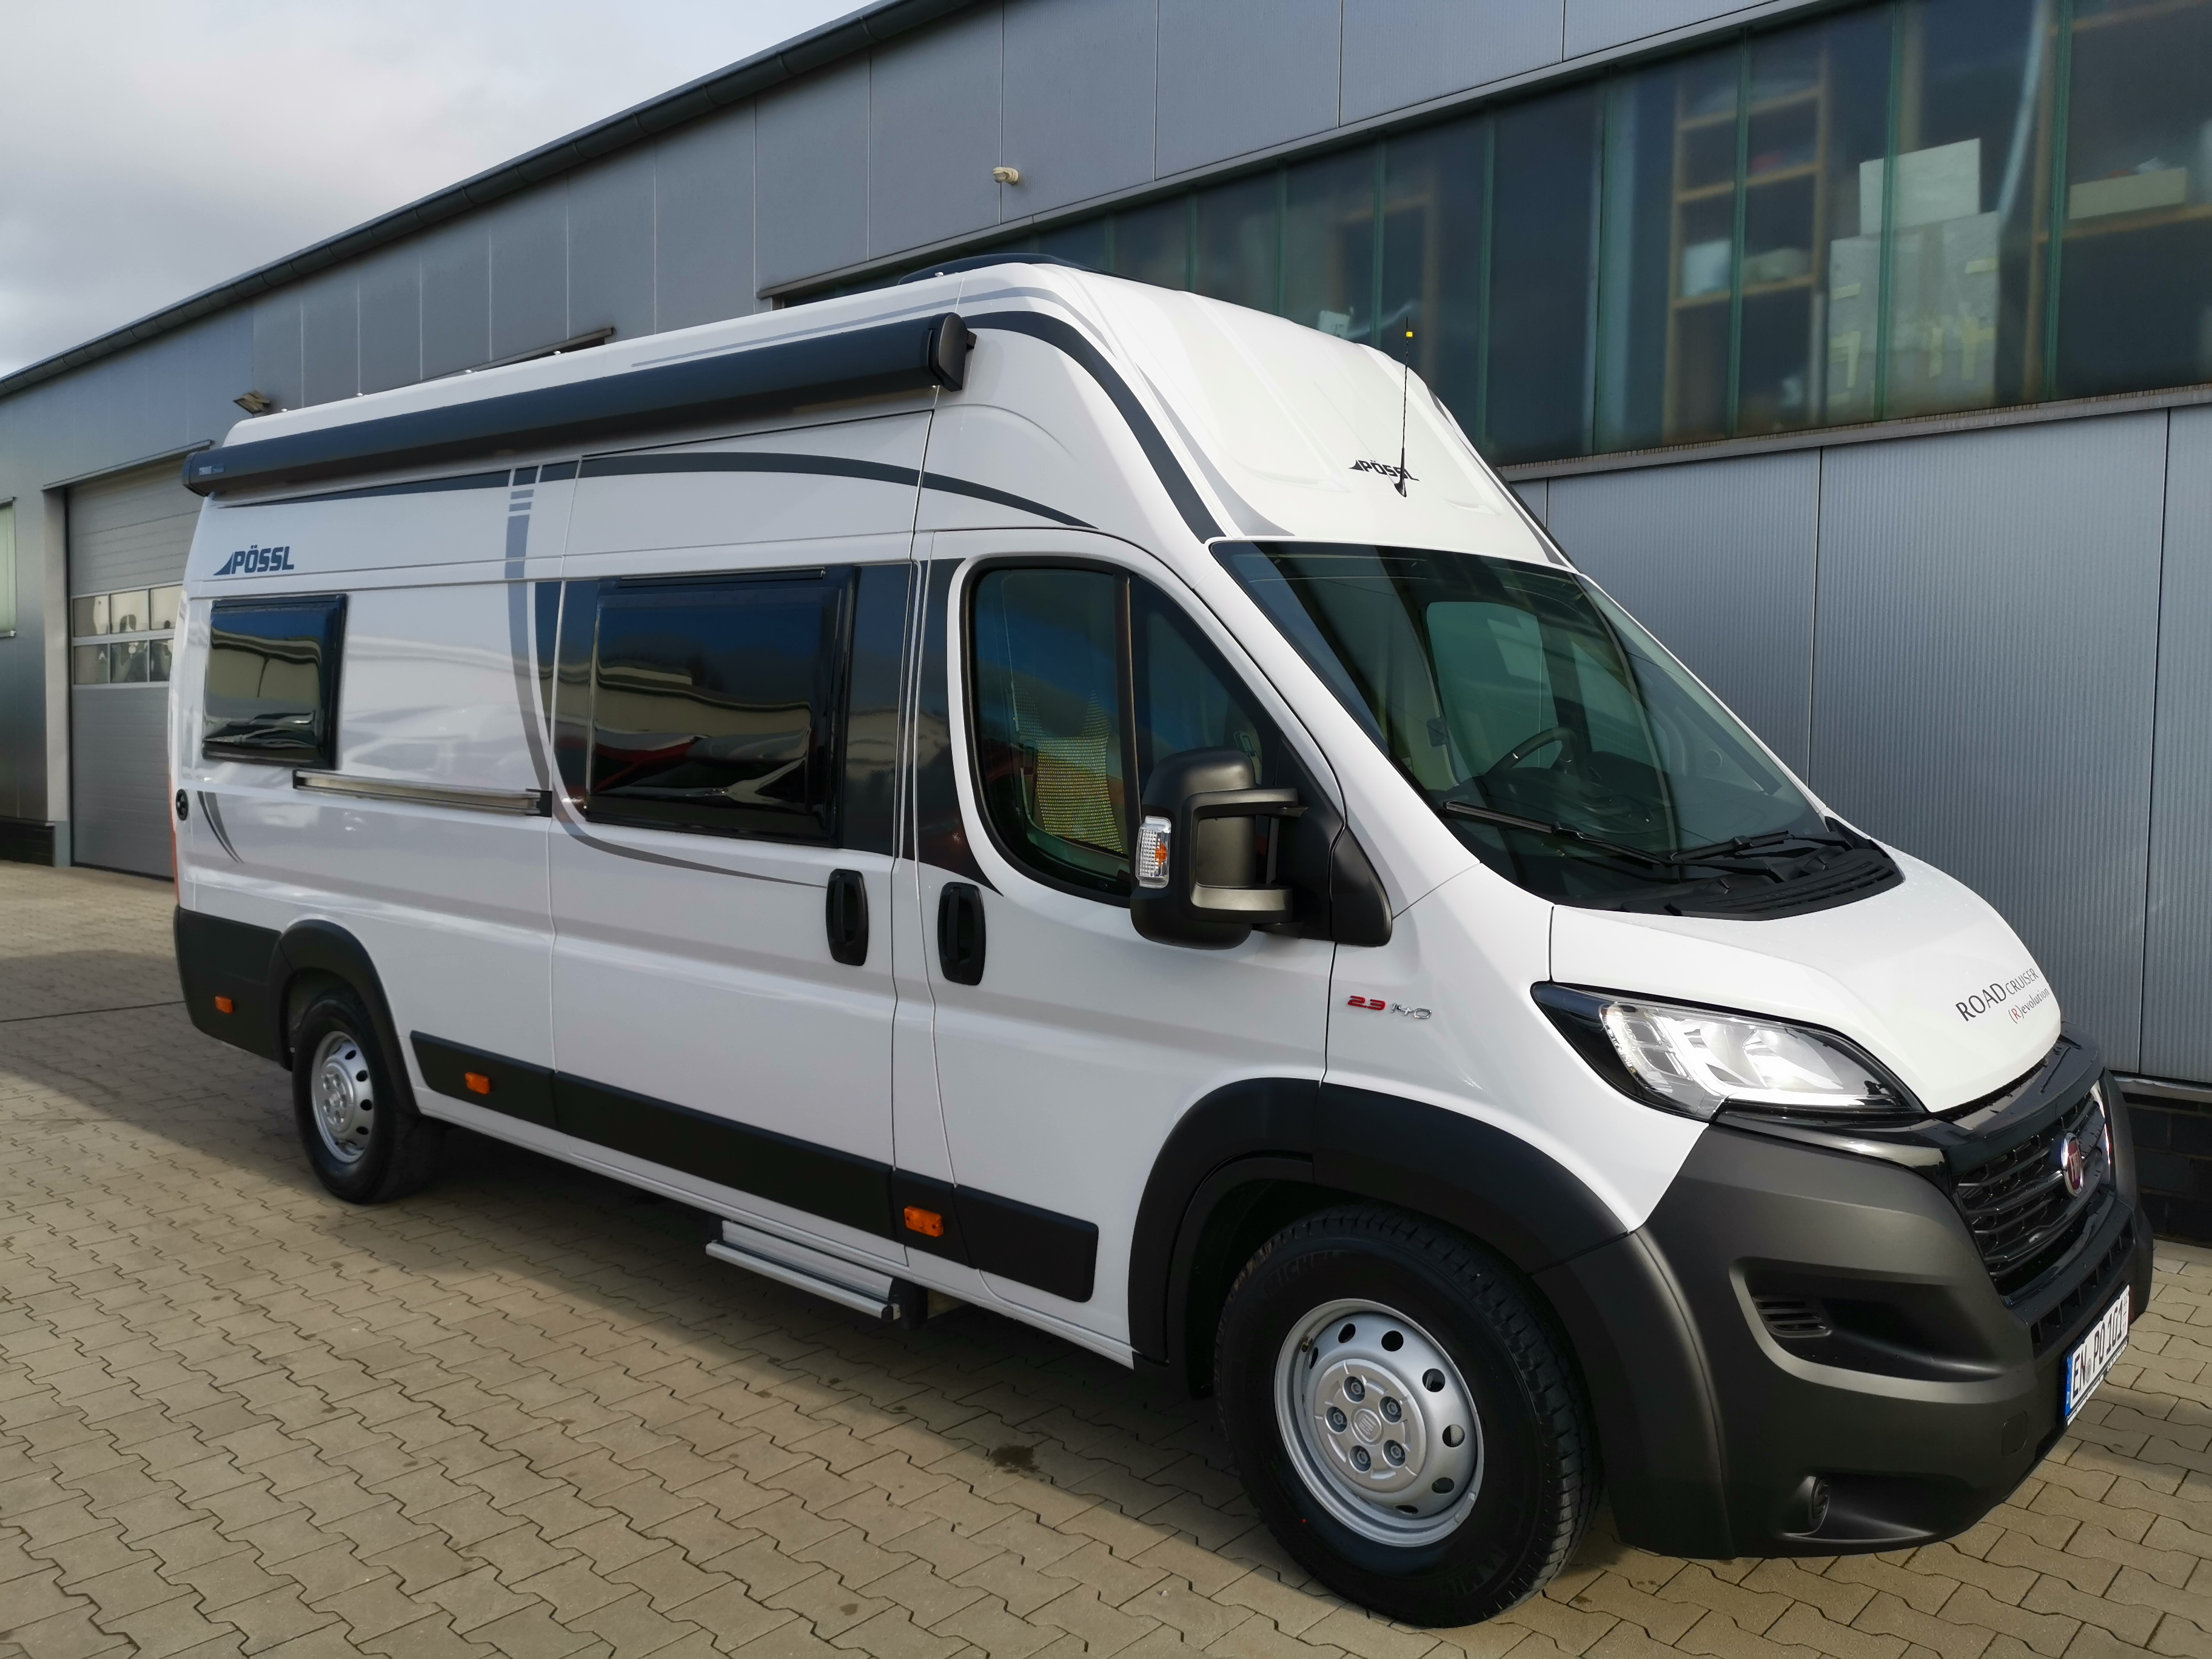 2020 Other Other Motor Home Class B Rental In Munchen Outdoorsy